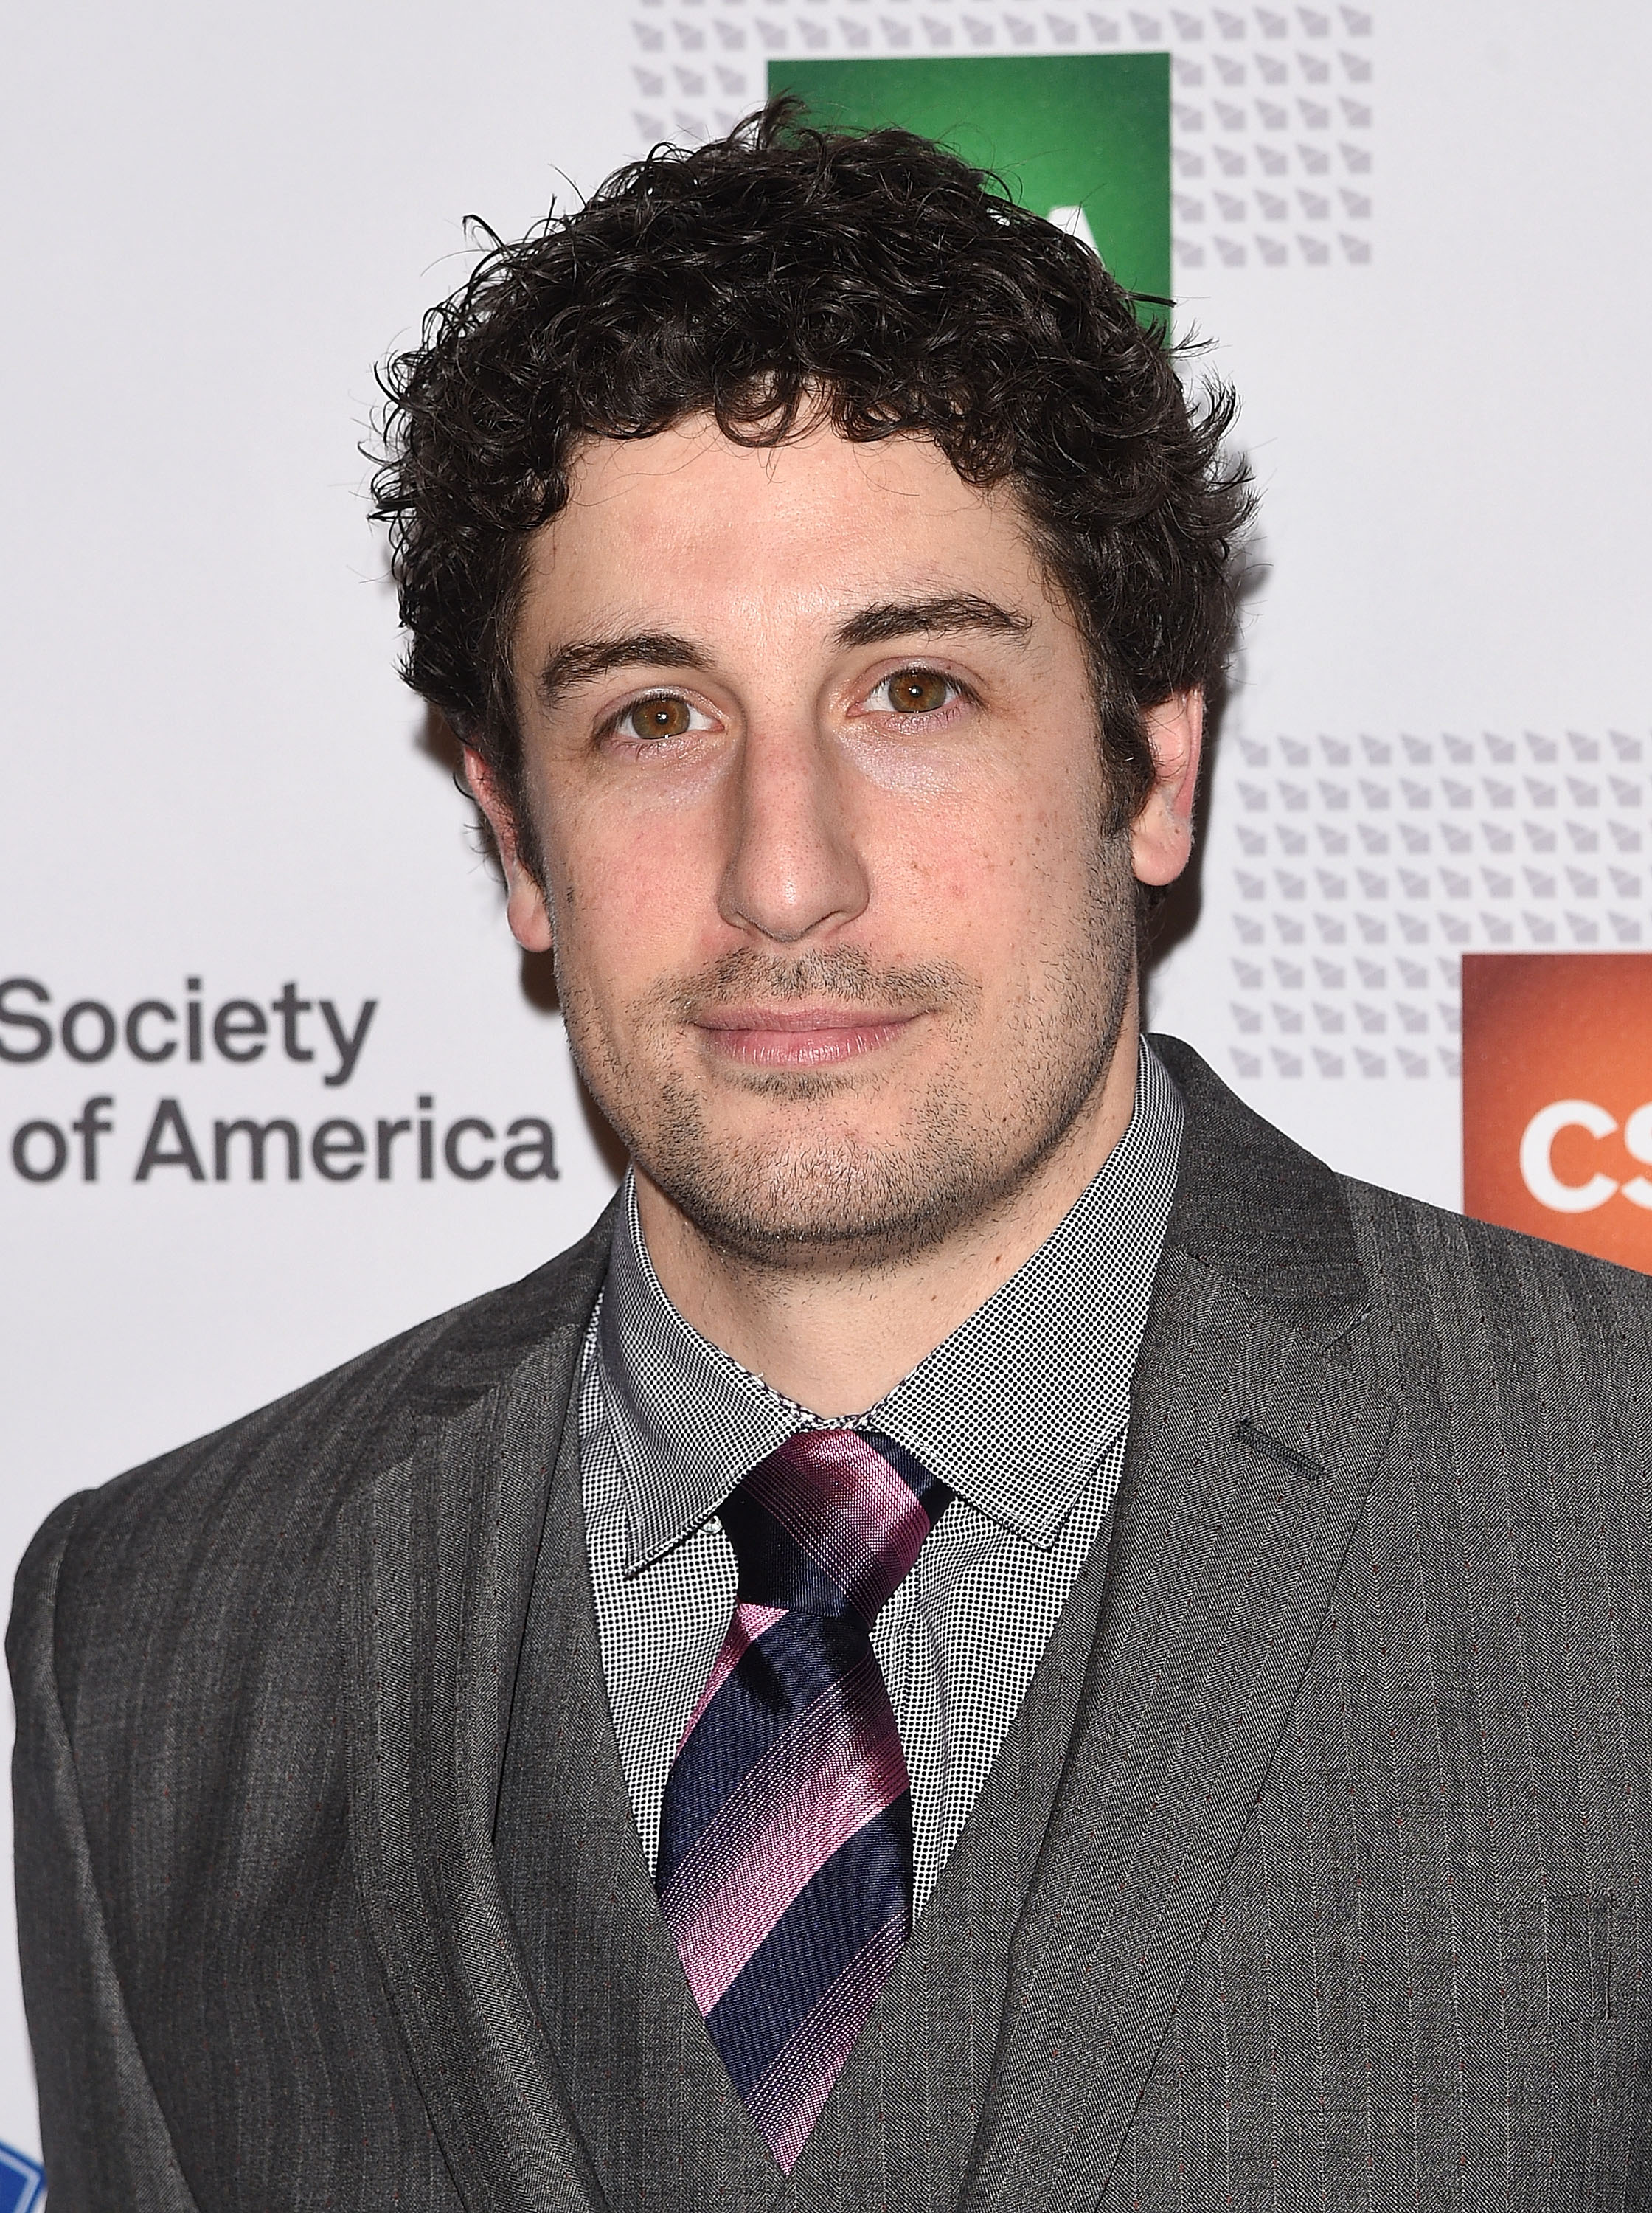 Actor Jason Biggs attends the 30th Annual Artios Awards in New York City on Jan. 22, 2015.